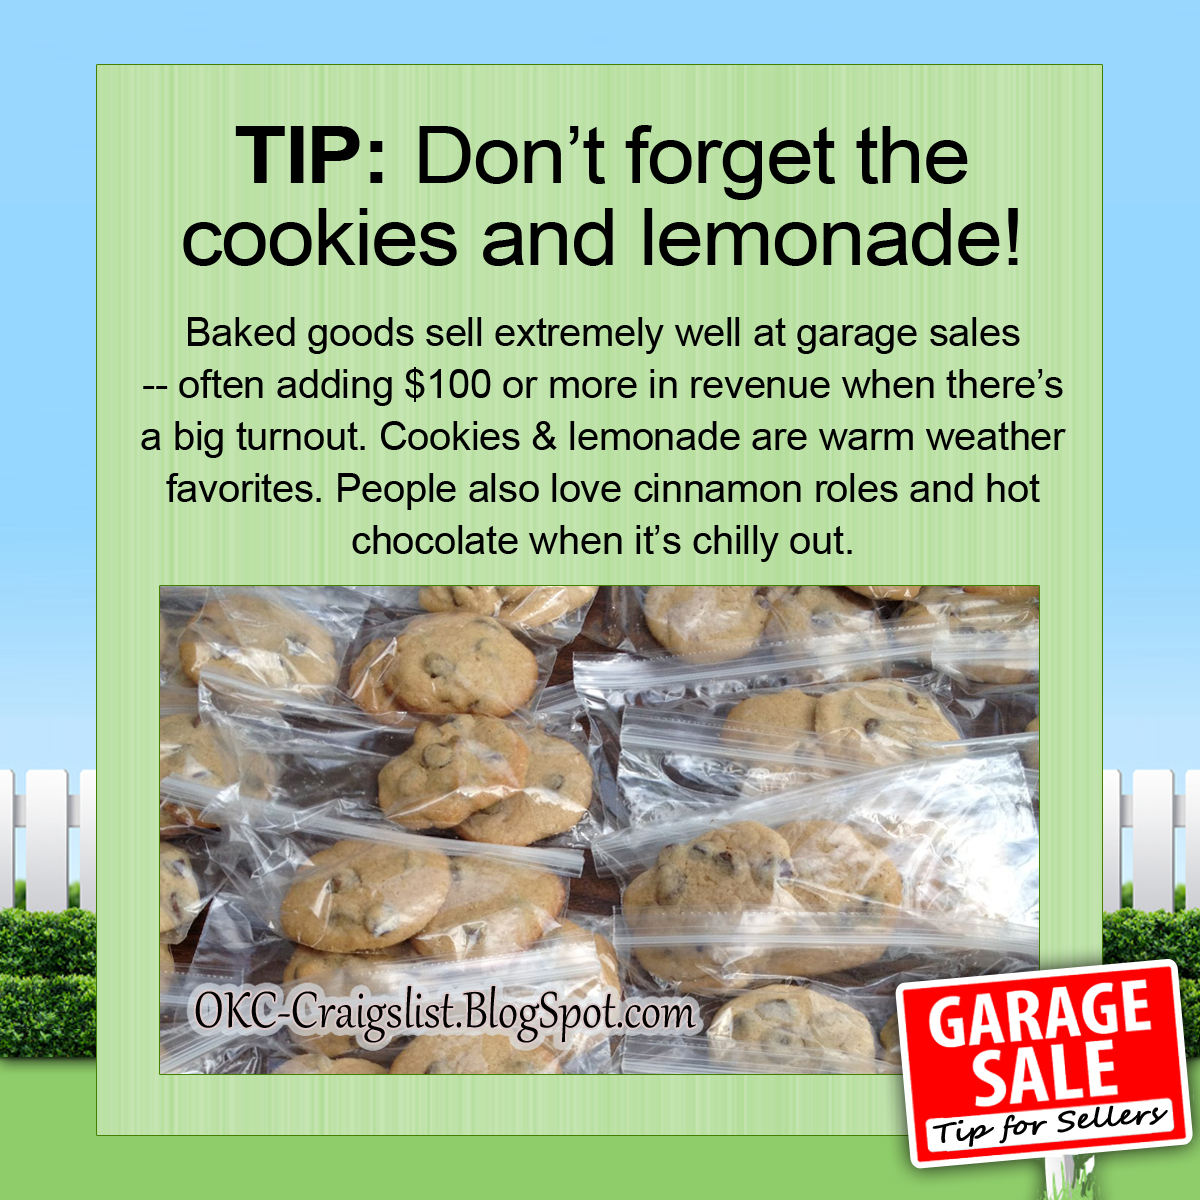 Learn how to host the very best garage sale ever - Garage Sale Tip Selling Baked Goods At Your Garage Sale Could Add An Extra 100